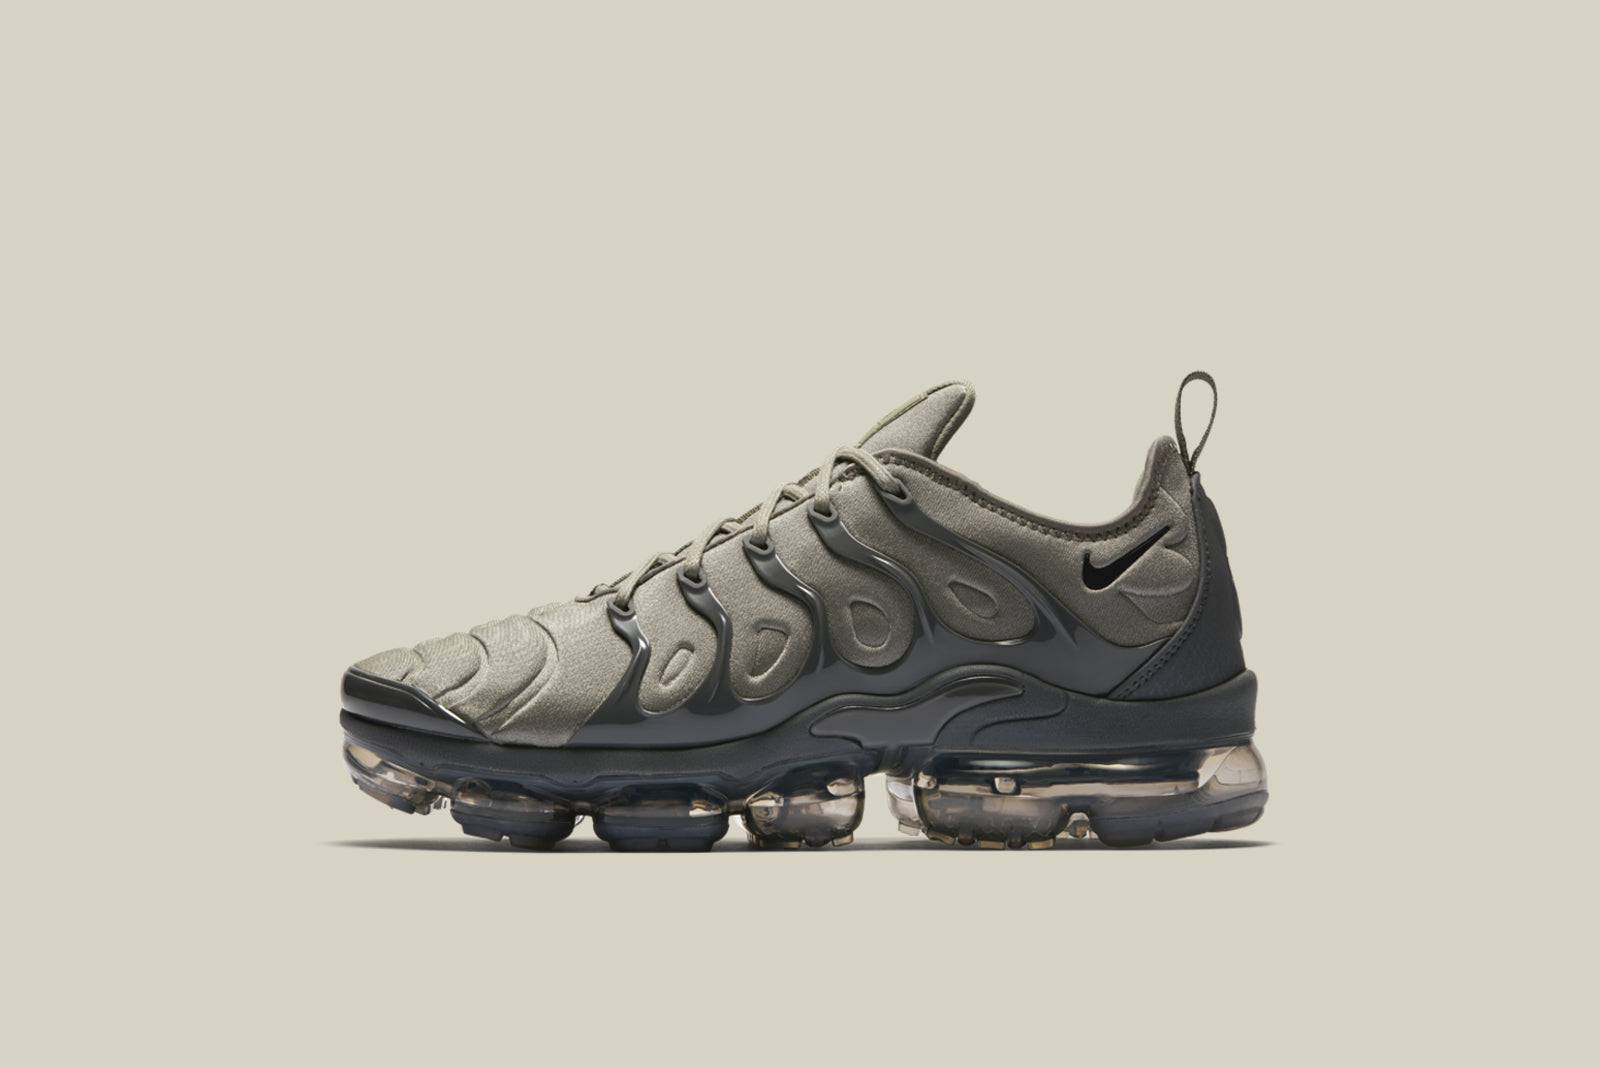 finest selection e314f 3f552 ... hombre zapatos black red dr19704 9fd70 cc3de germany nike air vapormax  plus we desert camo at5681 001. dark stucco white dark grey coupon ...